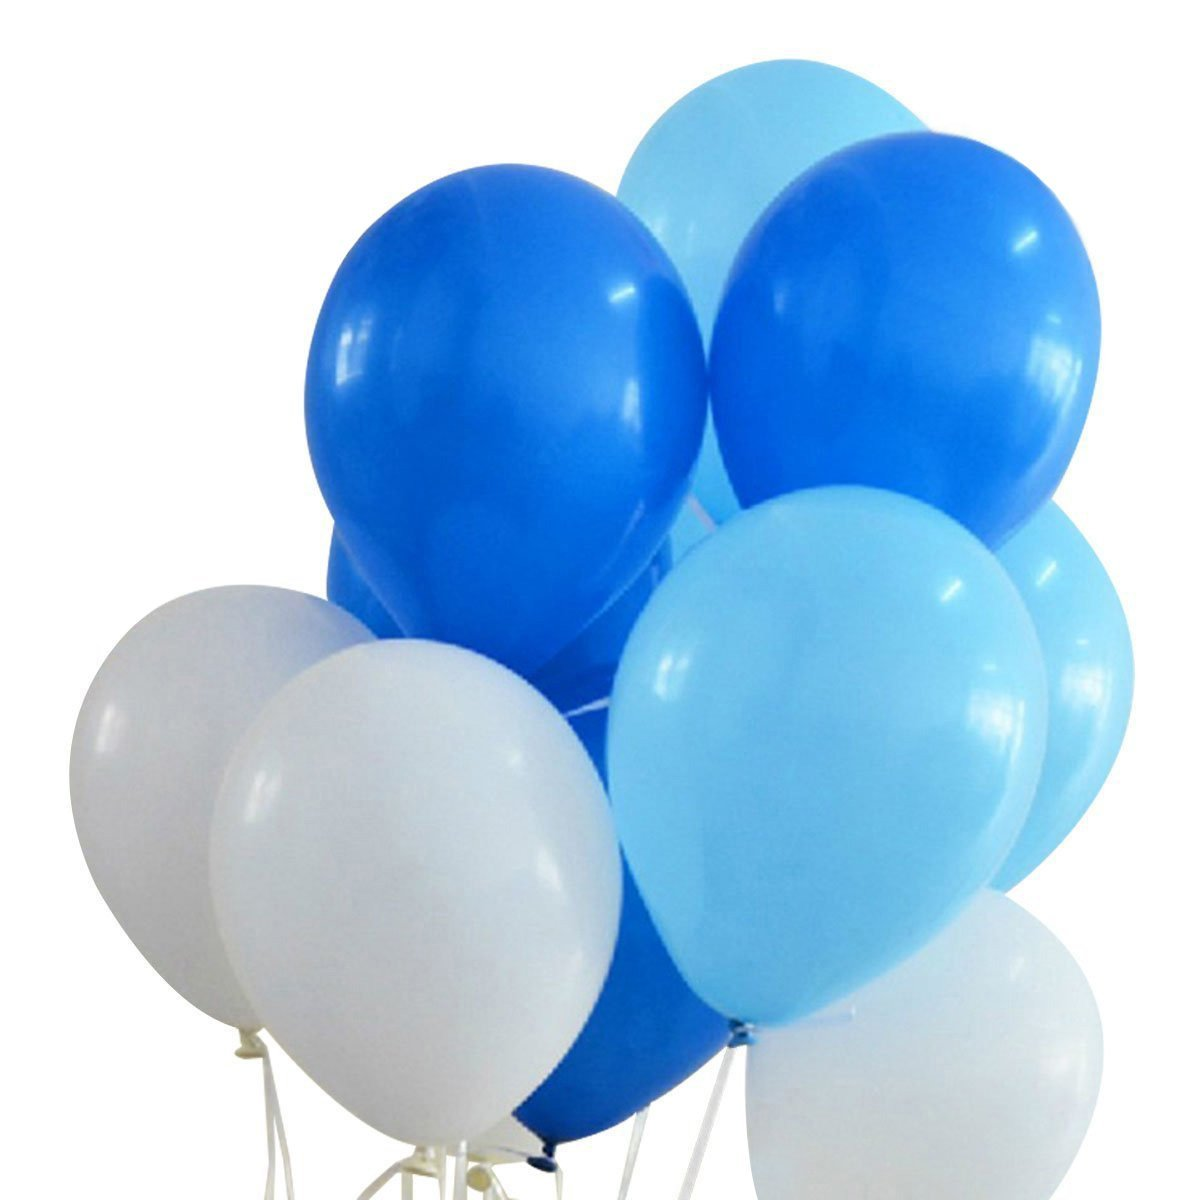 The New W0rld15 latex balloons 12-inch white and blue and light blue 100pcs The New World15 B01M2WCXB9